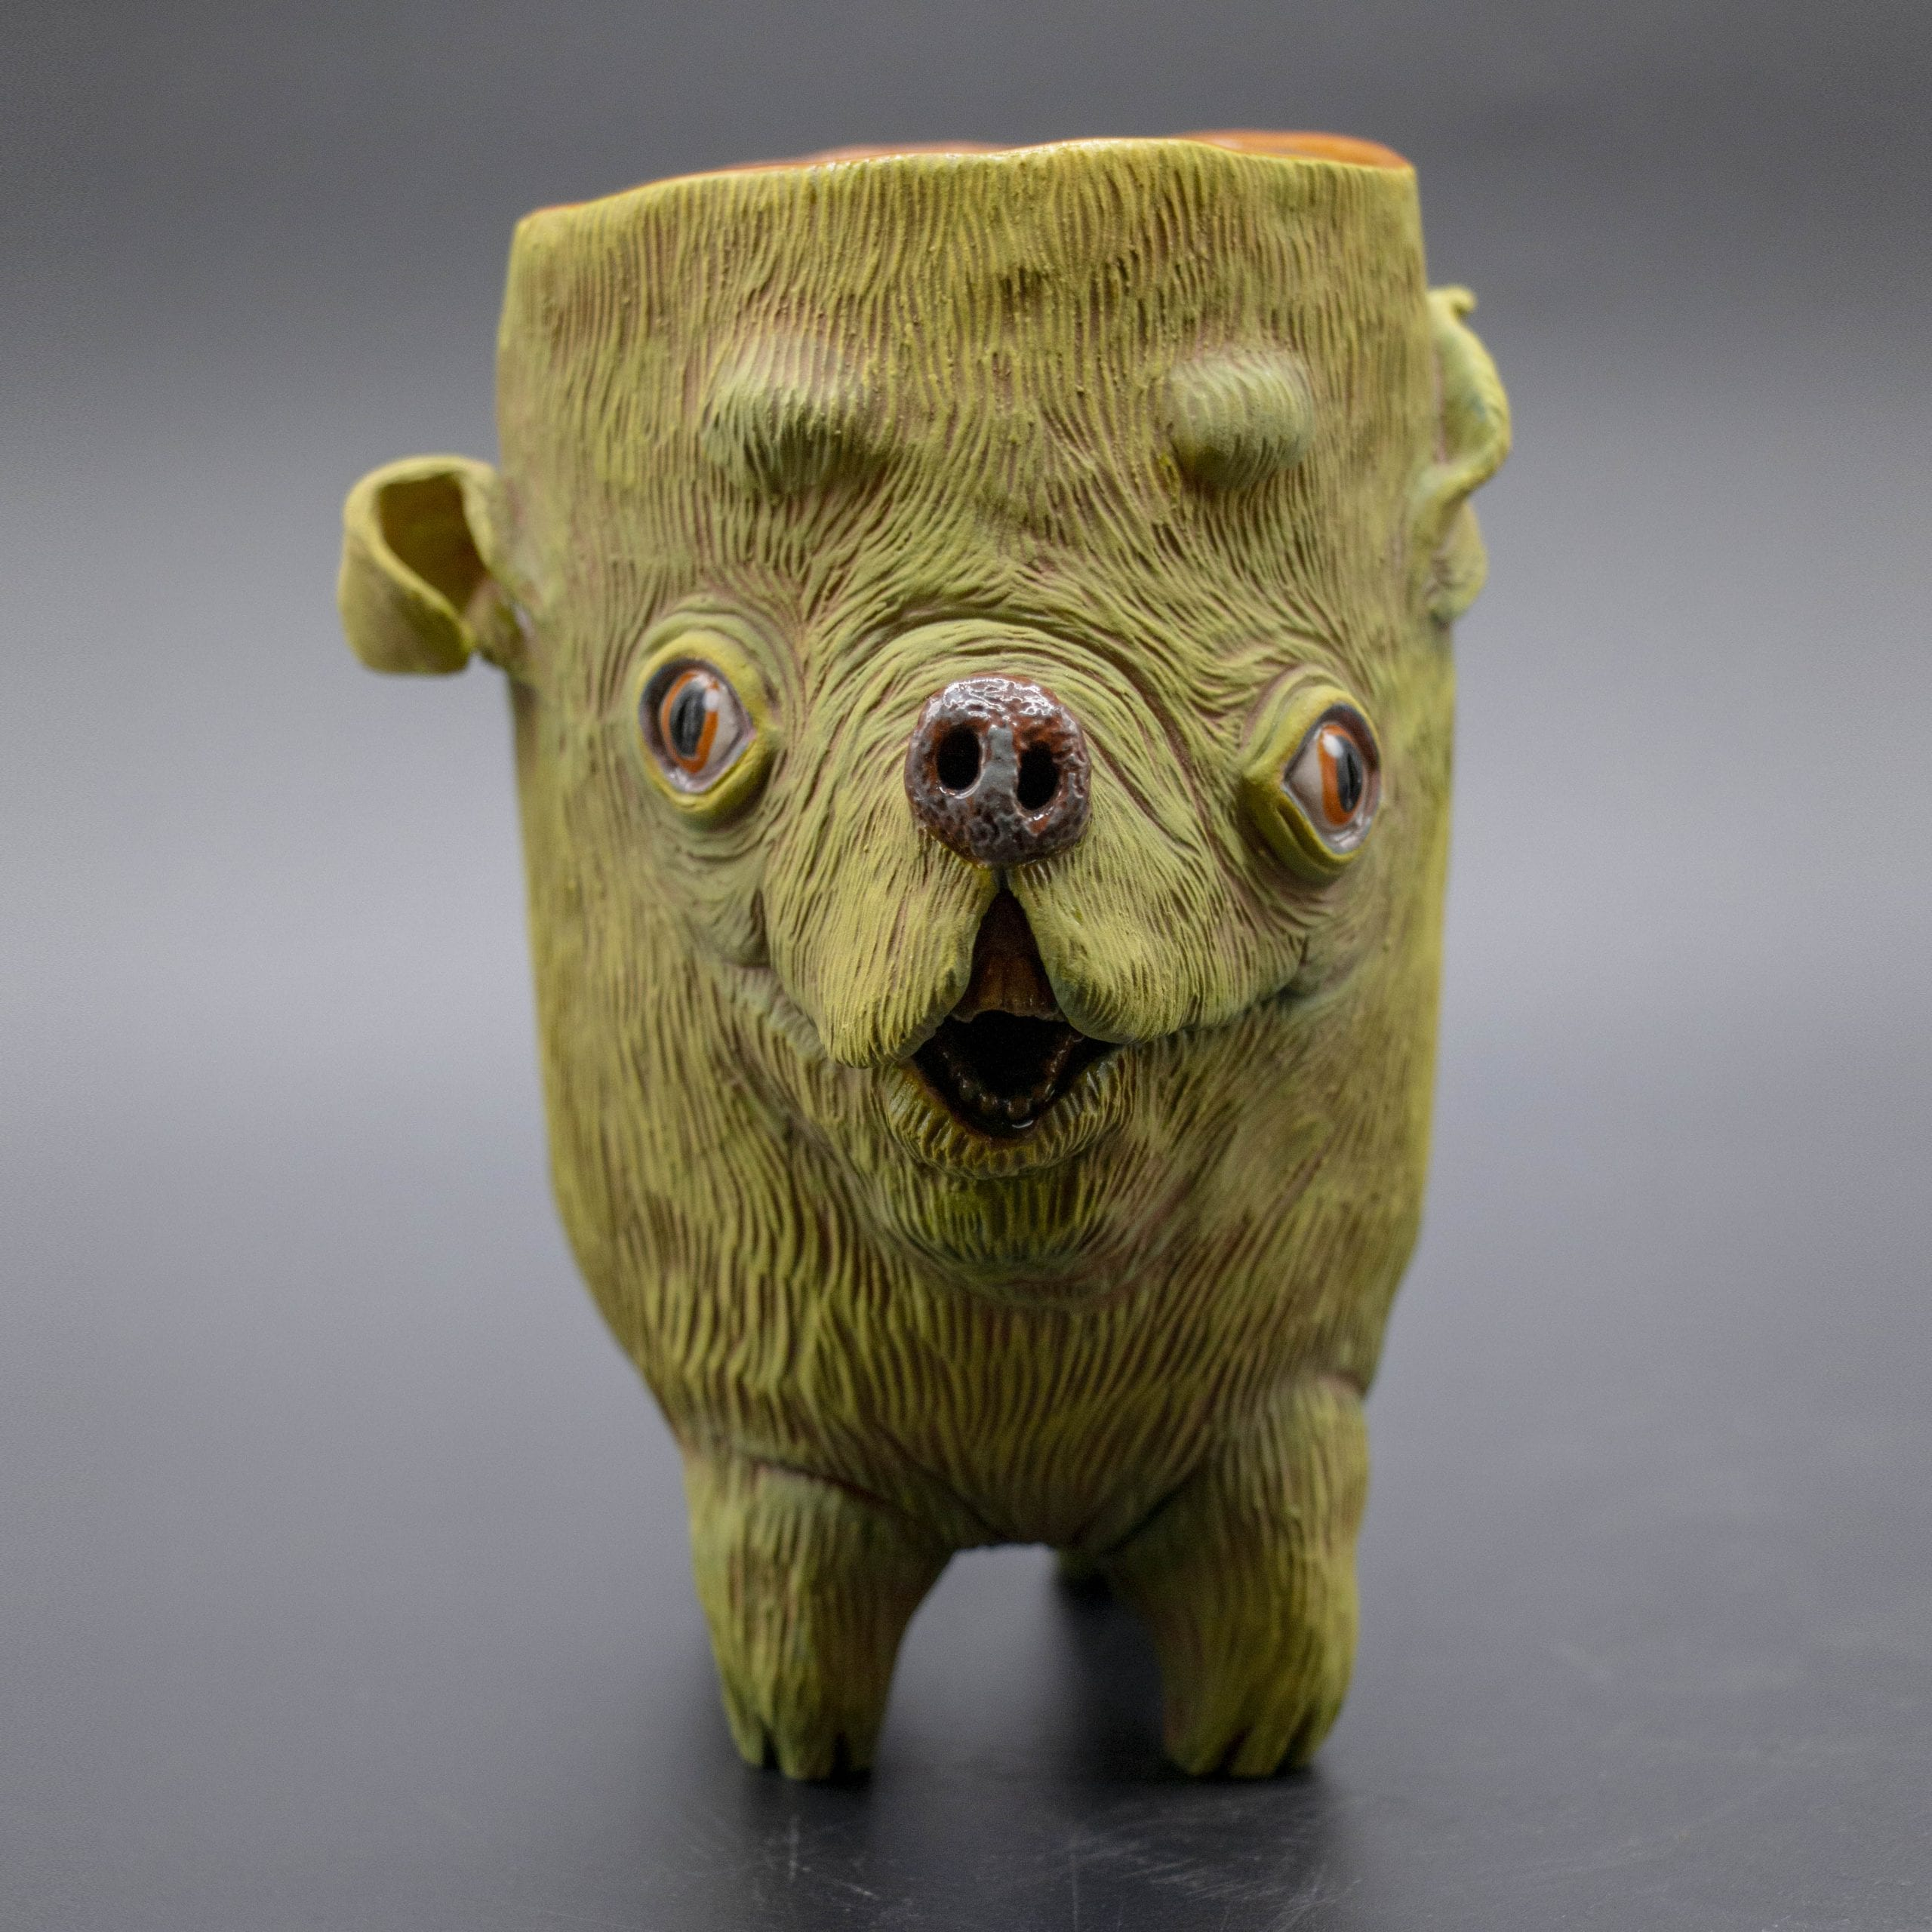 "Kelsey Owens - 2020 - Excited Pup Cup - White Stoneware - 5"" x 5"" x 3.5"""